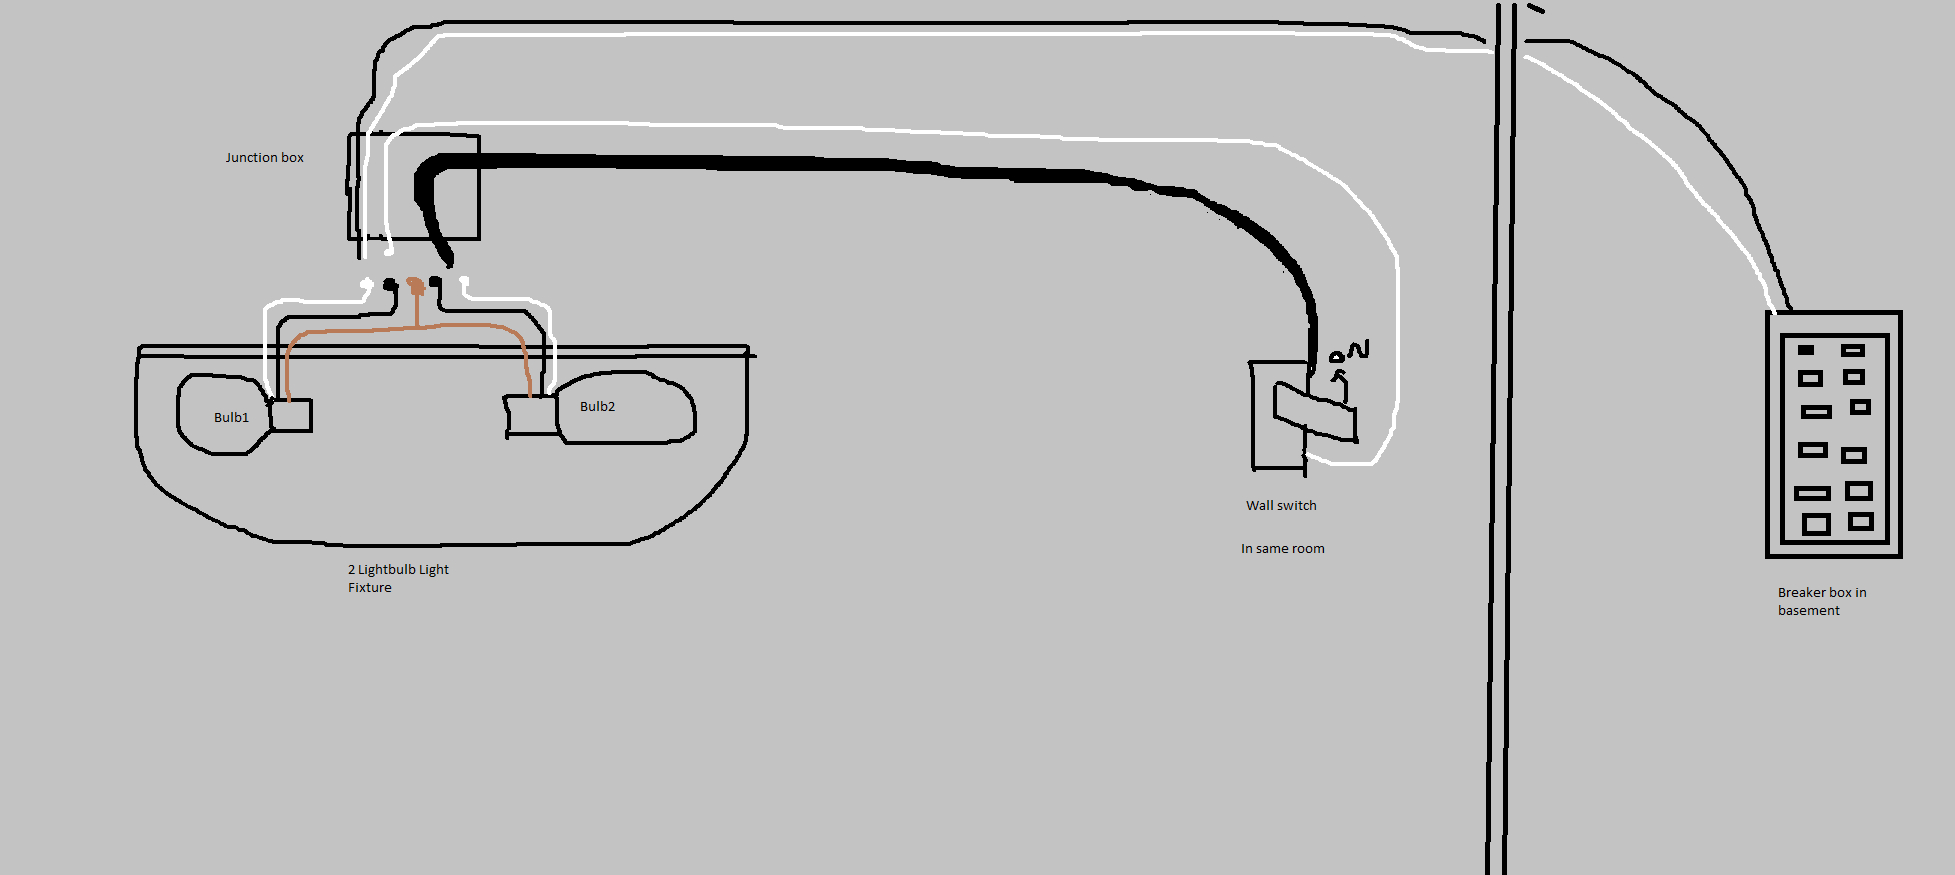 Electrical - A Light Fixture With 2 White, 2 Black Wires, 1 Copper - Junction Box Wiring Diagram